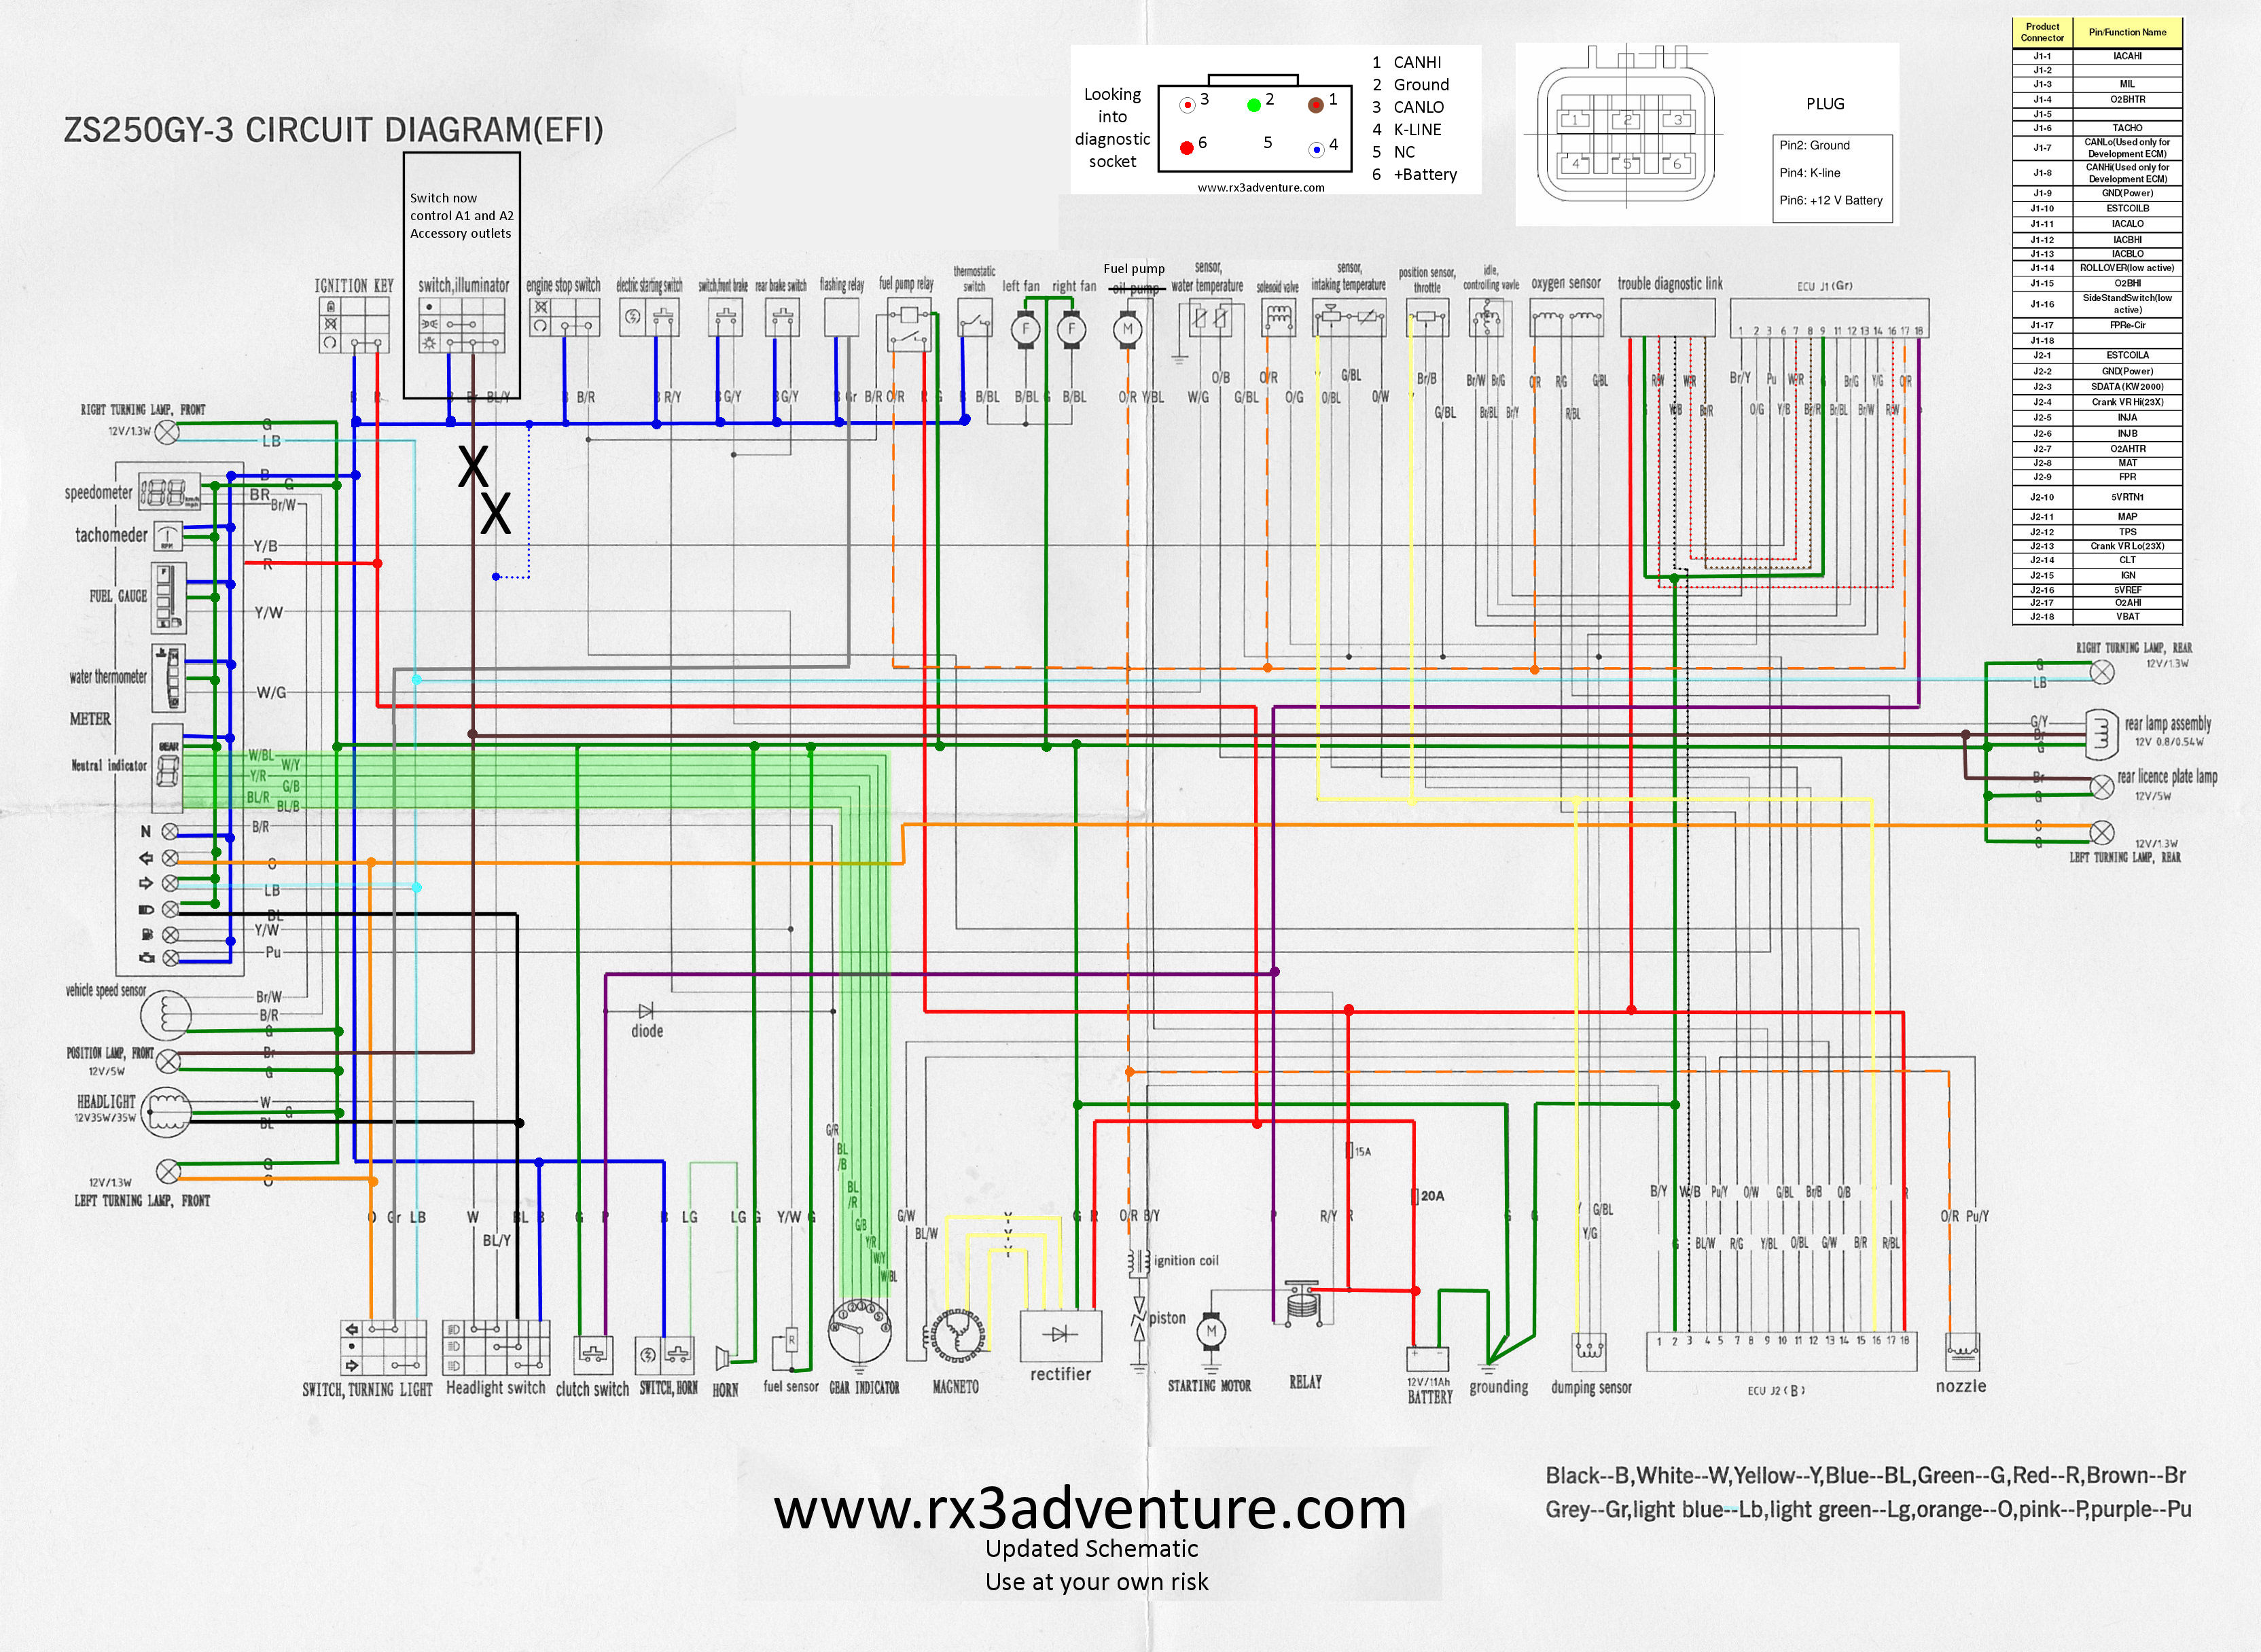 Rx3 Wiring Schematic Adventure Electric Scooter Diagram Get Free Image About If You Click On The Unreadably Small Version Of Below Youll Full Size Which Wont Fit A Web Page